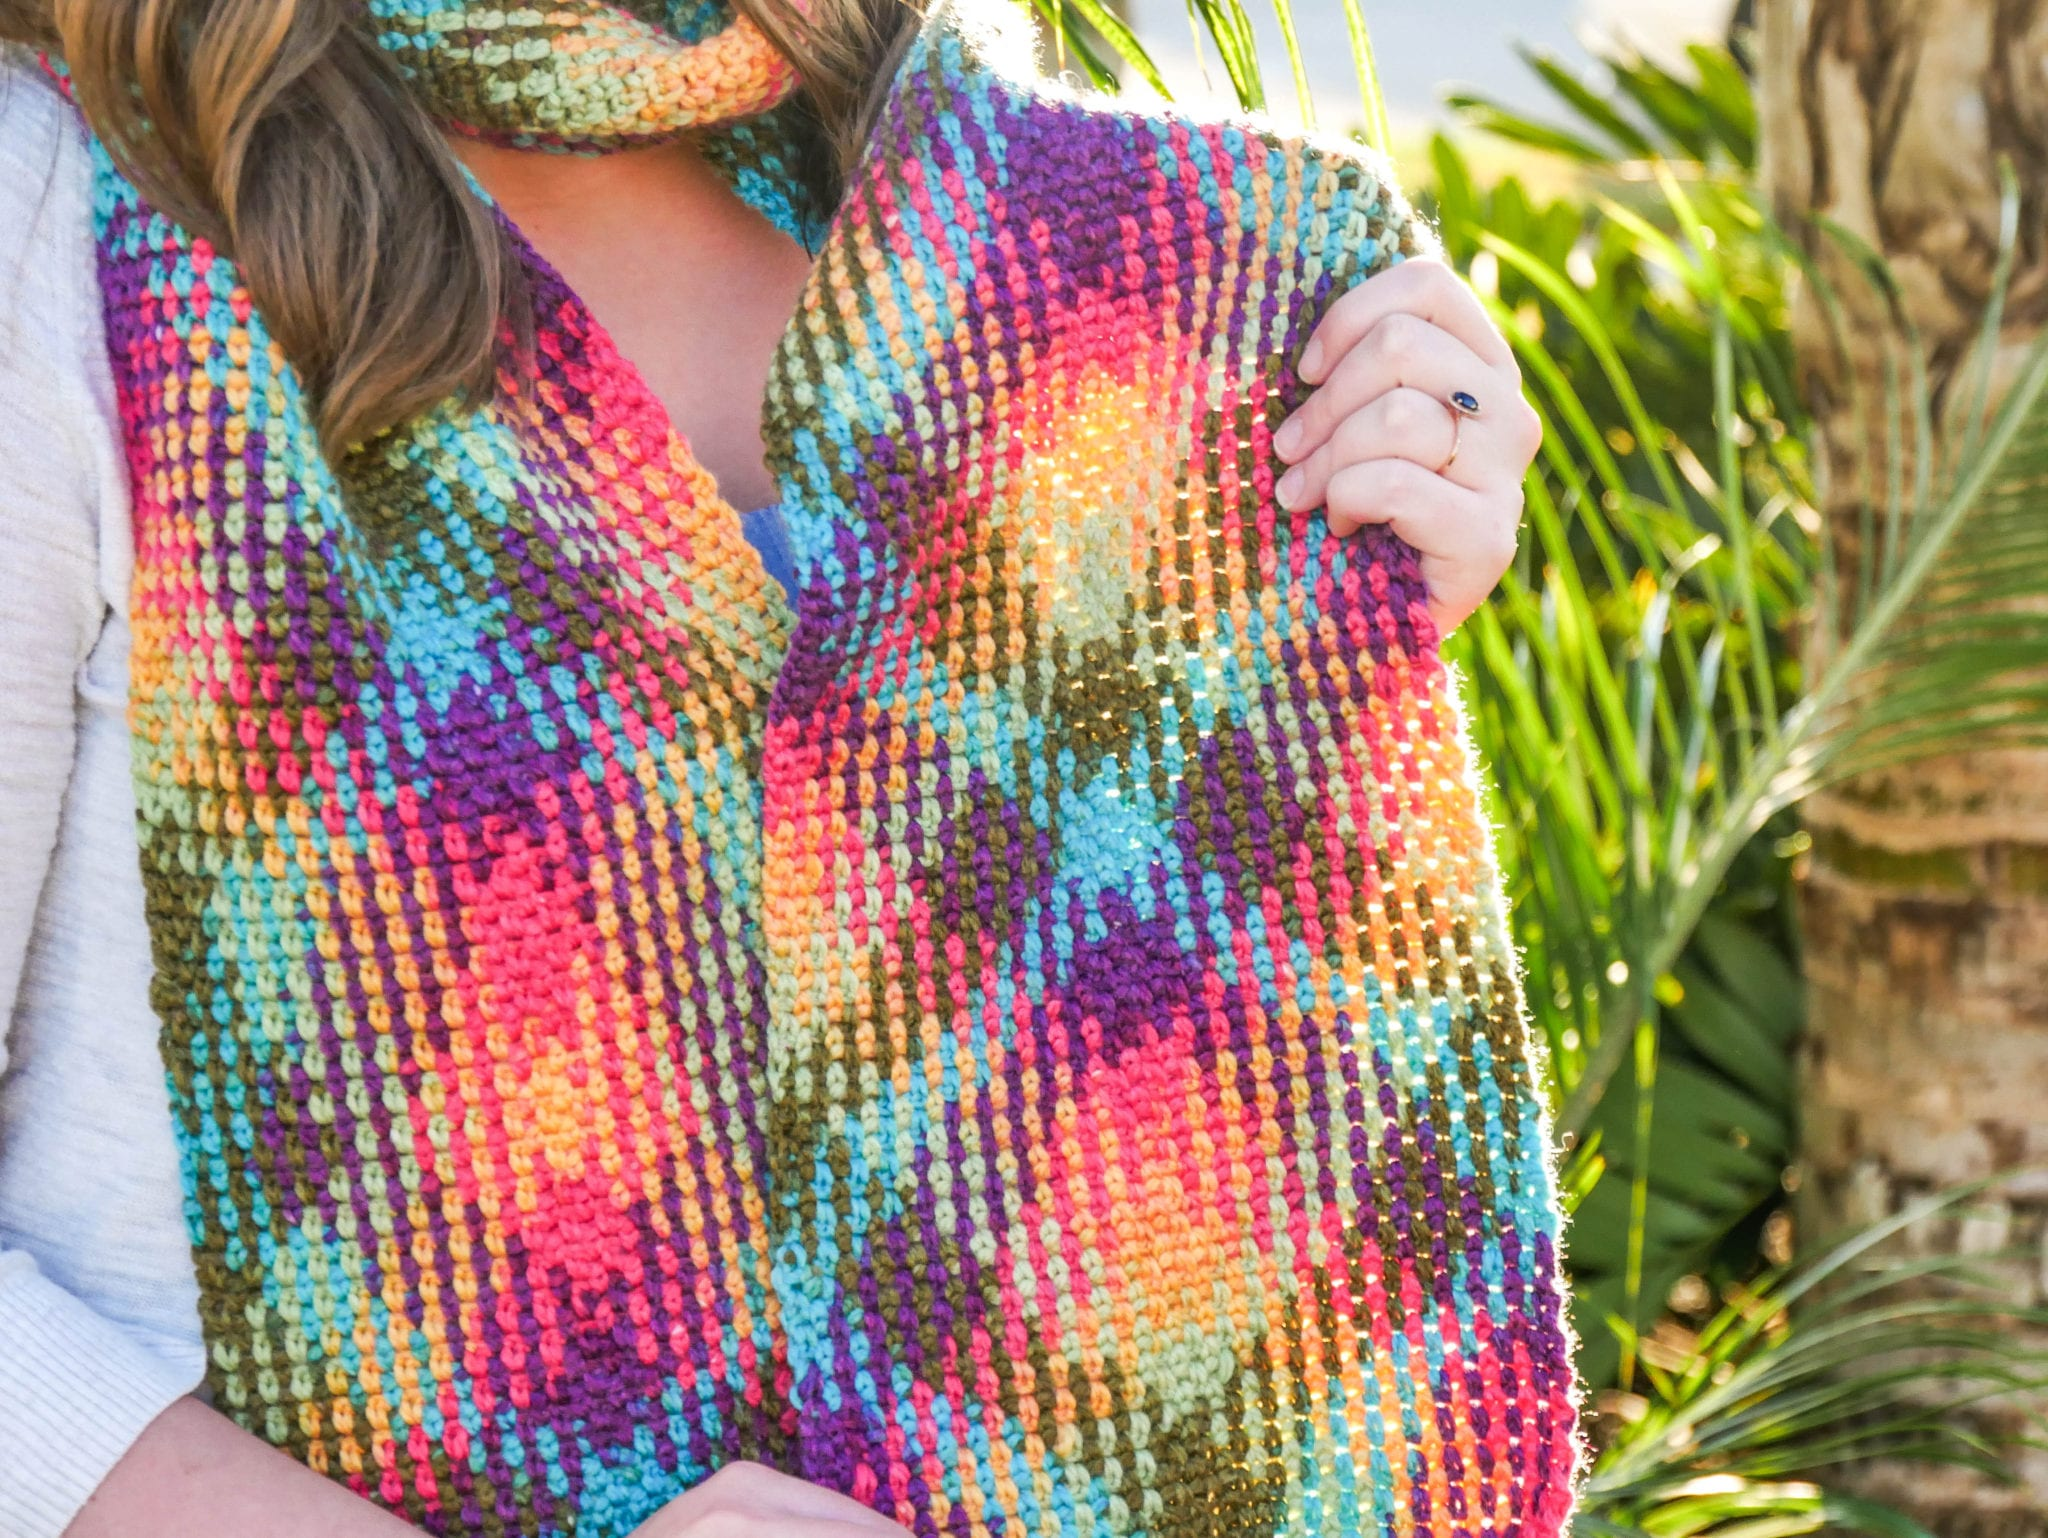 Planned color pooling magic sewrella i wanted to tell you all about a super cool crochet project that is easy to make and produces stunning results bankloansurffo Choice Image